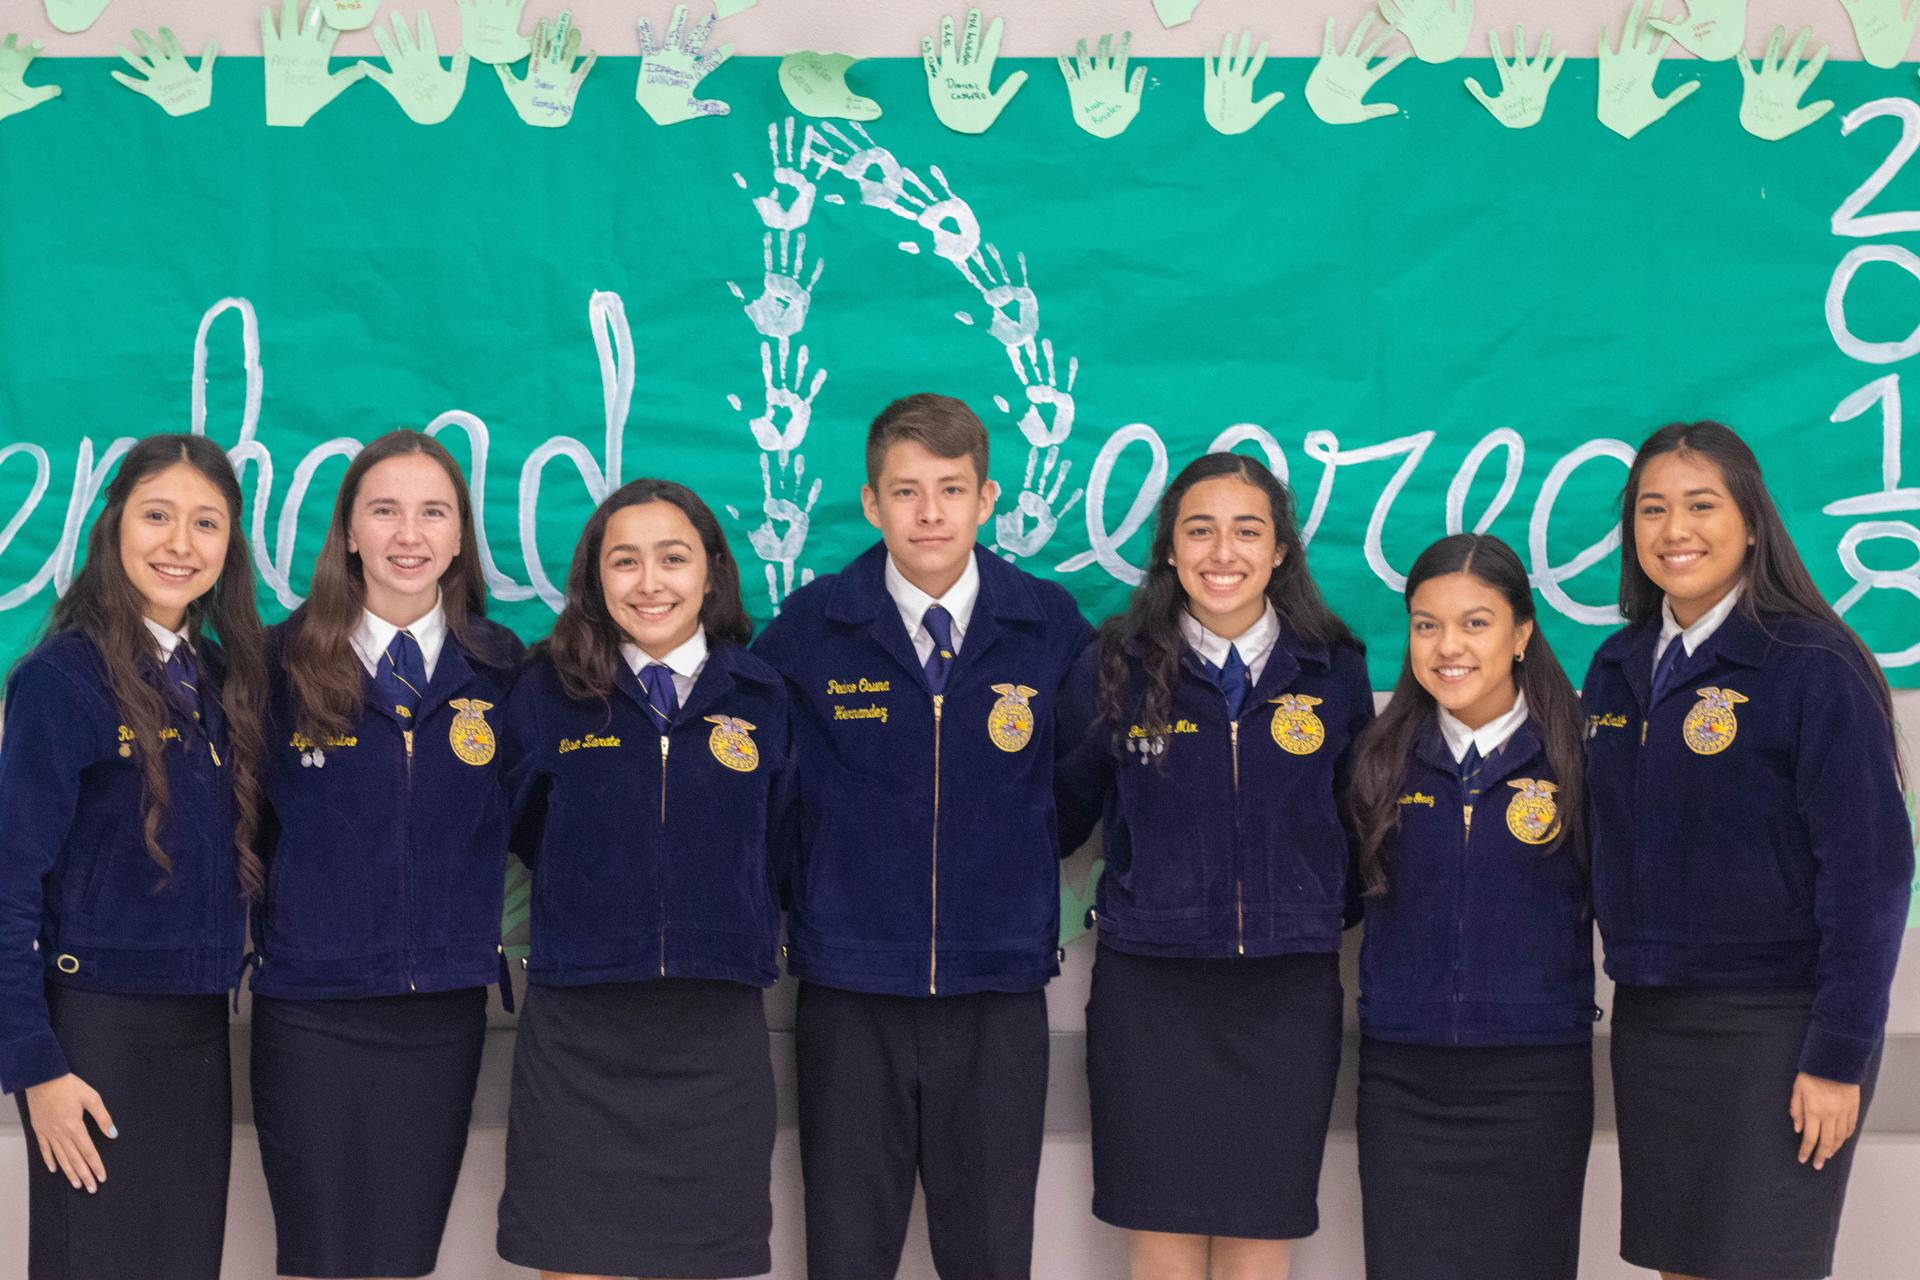 FFA leaders pose for picture behind Greenhand poster